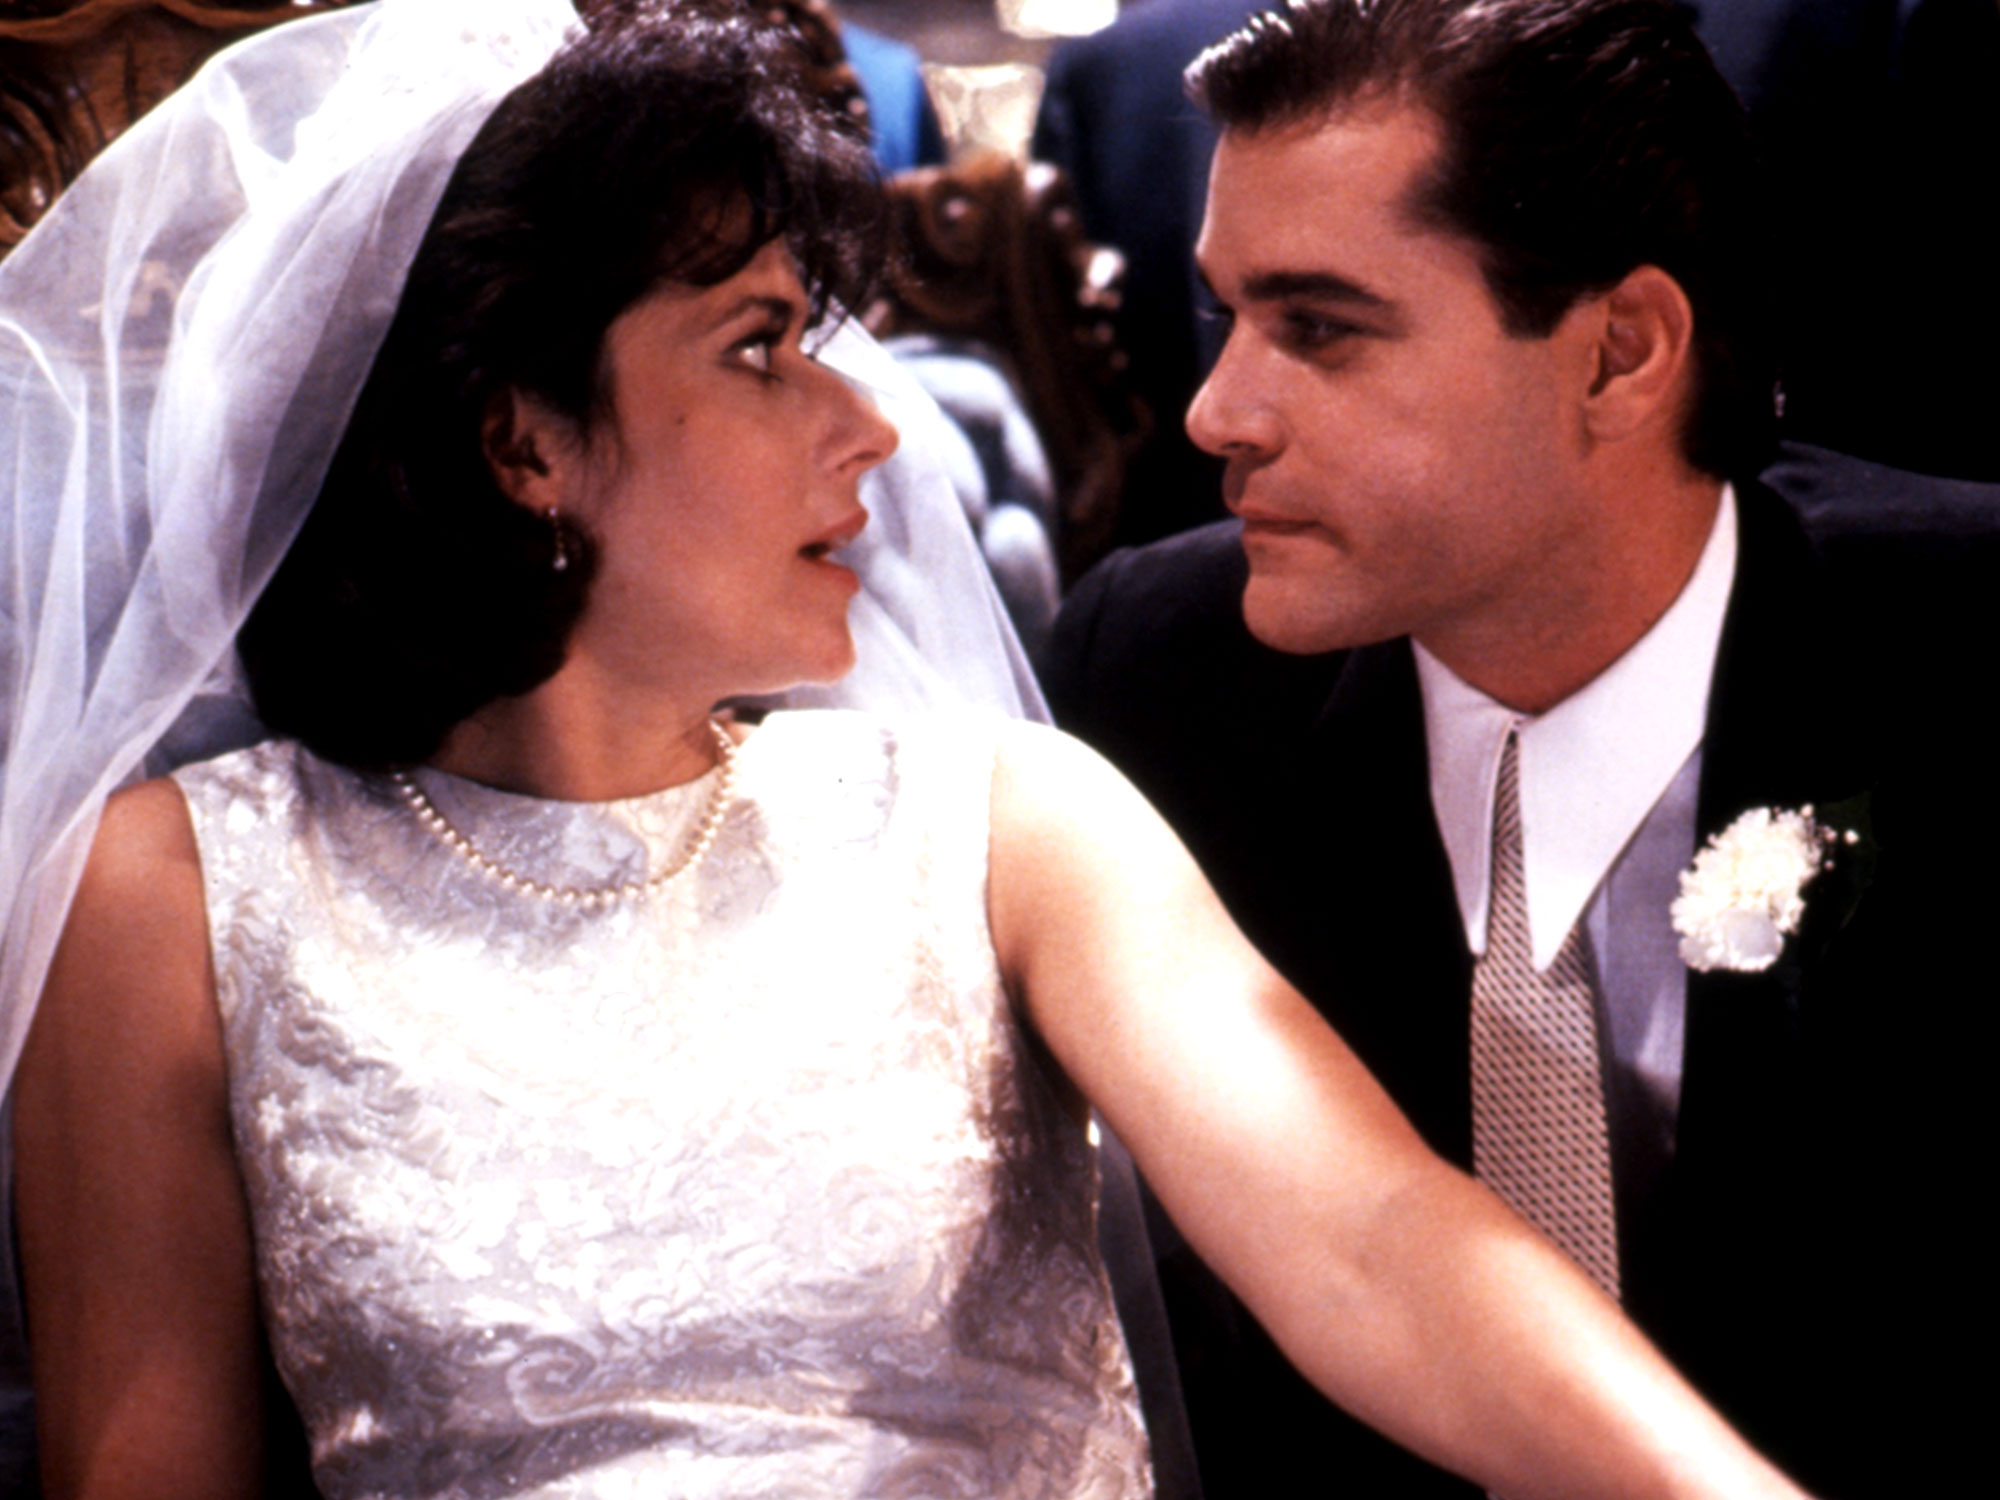 Ray Liotta and Lorraine Bracco in Goodfellas (1990)